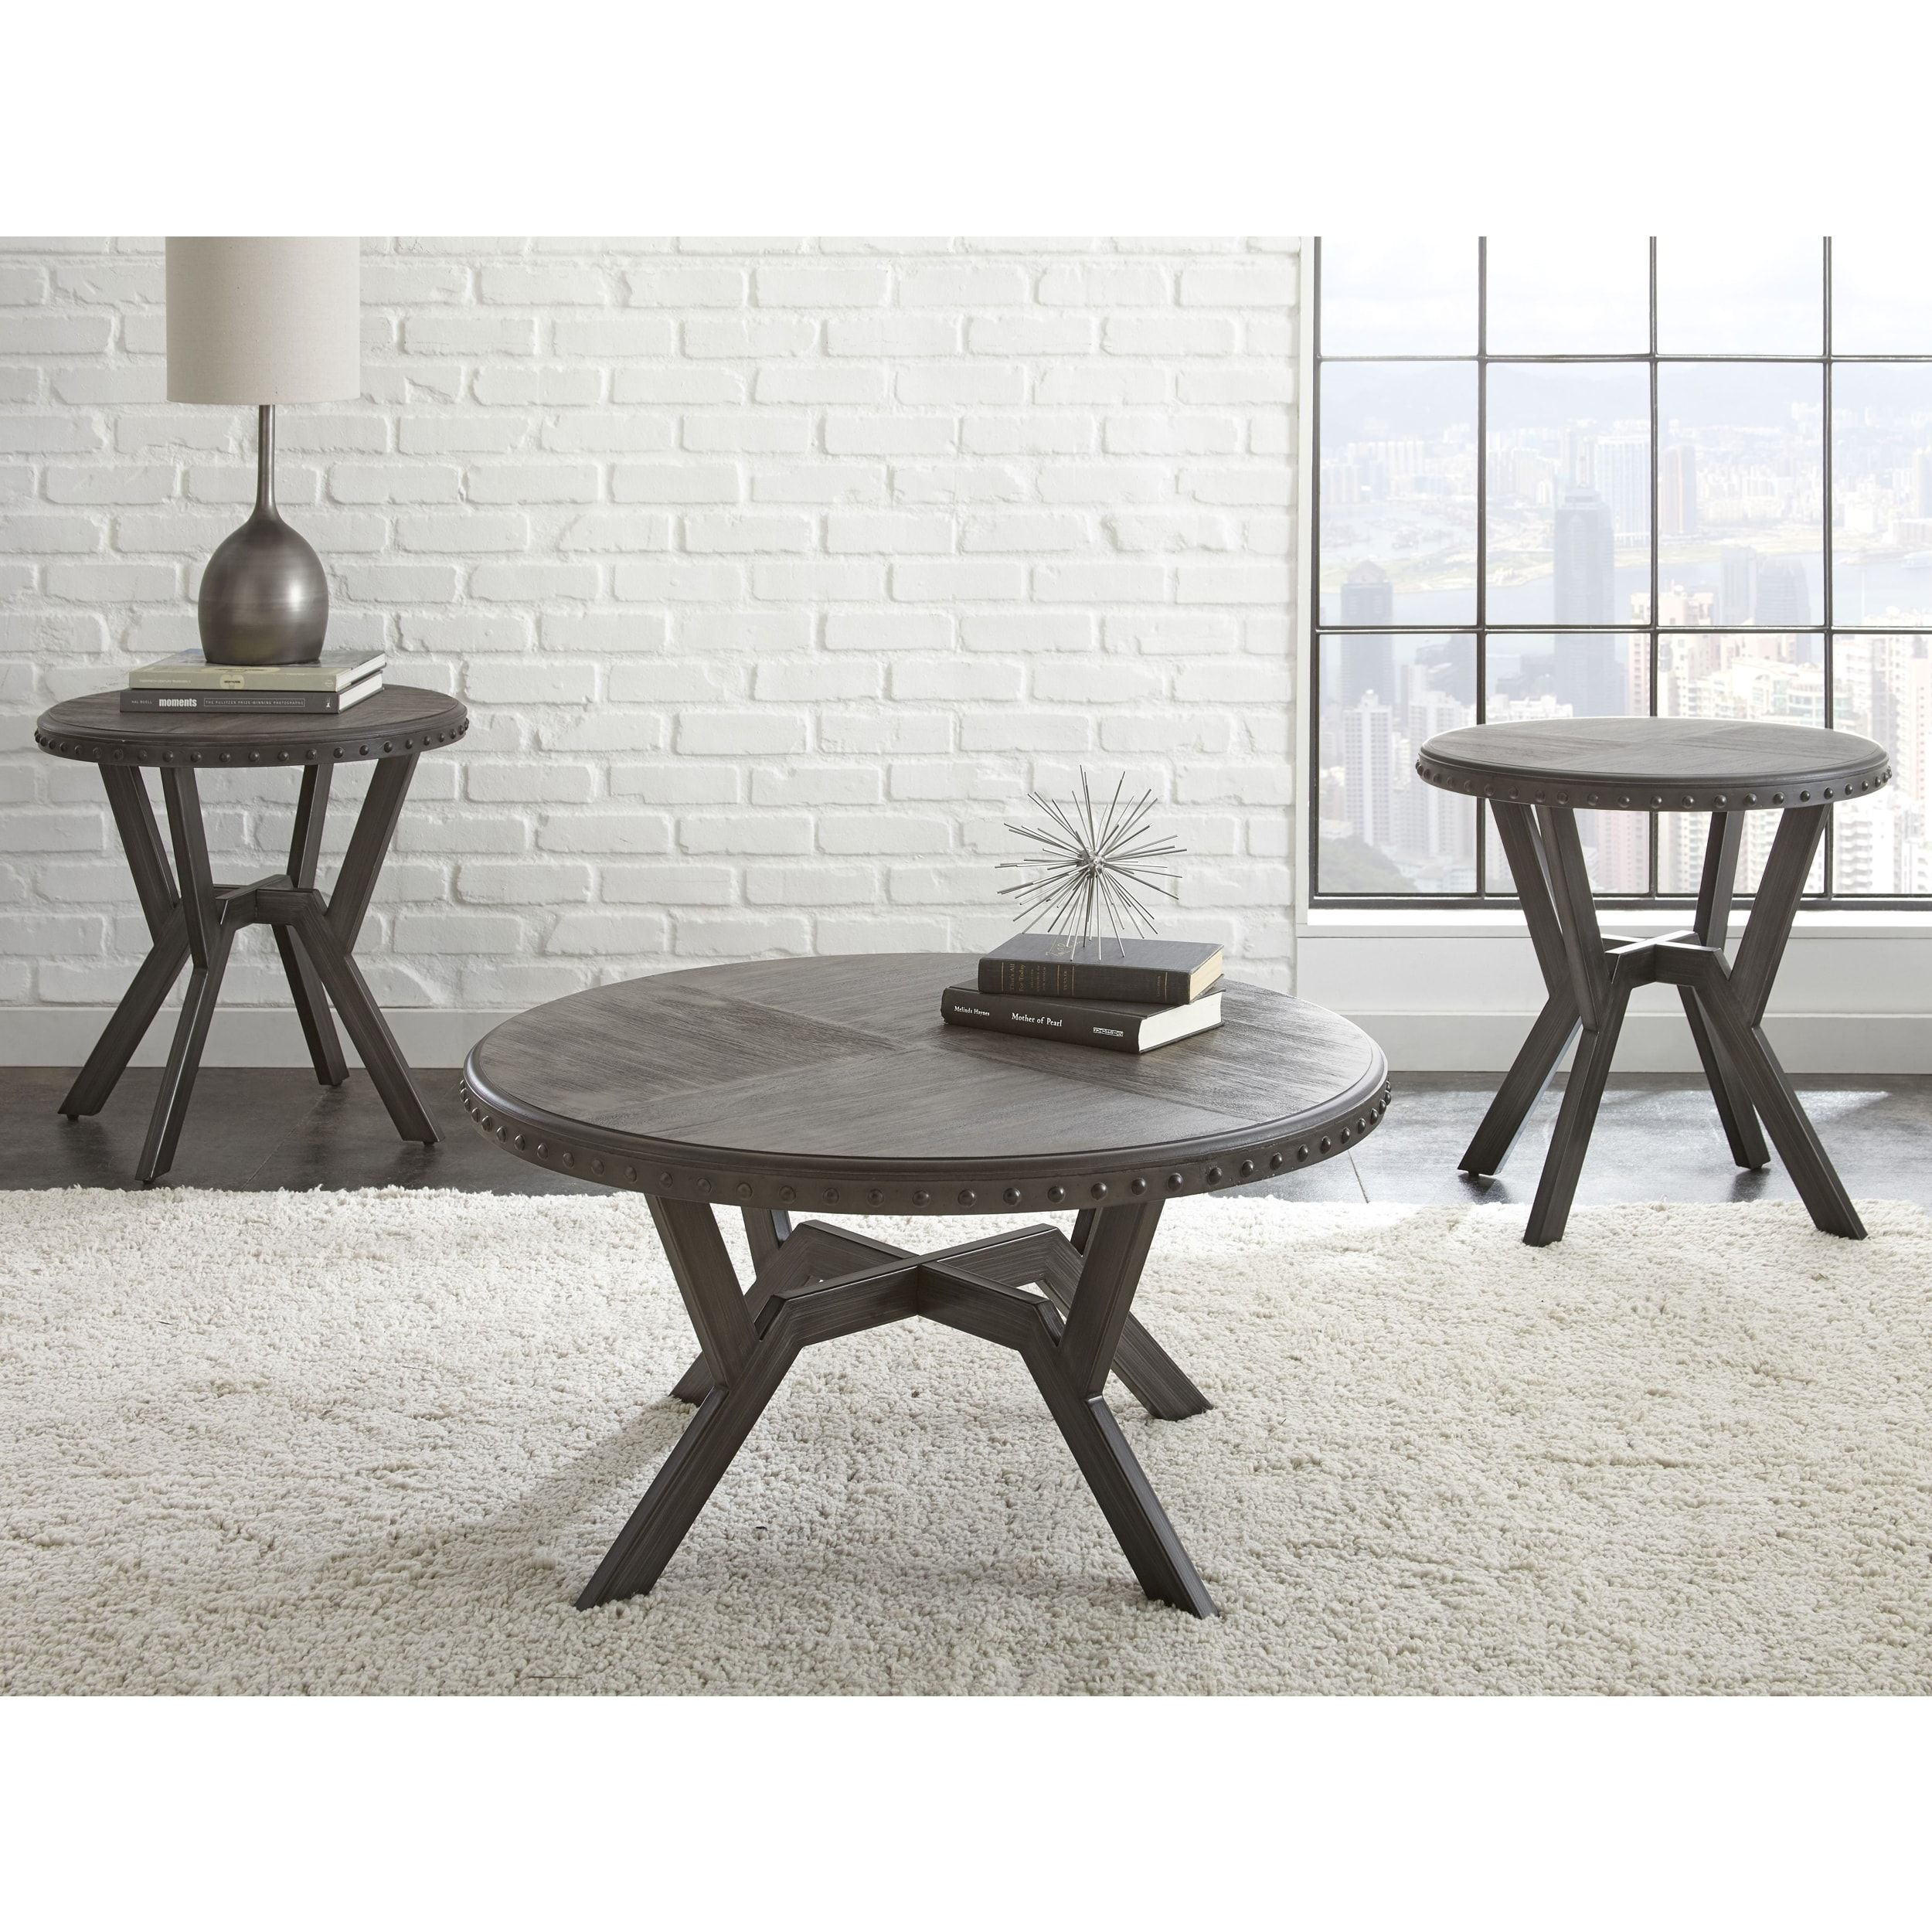 Avilla Grey Metal Round Industrial Style End Table By Greyson Living